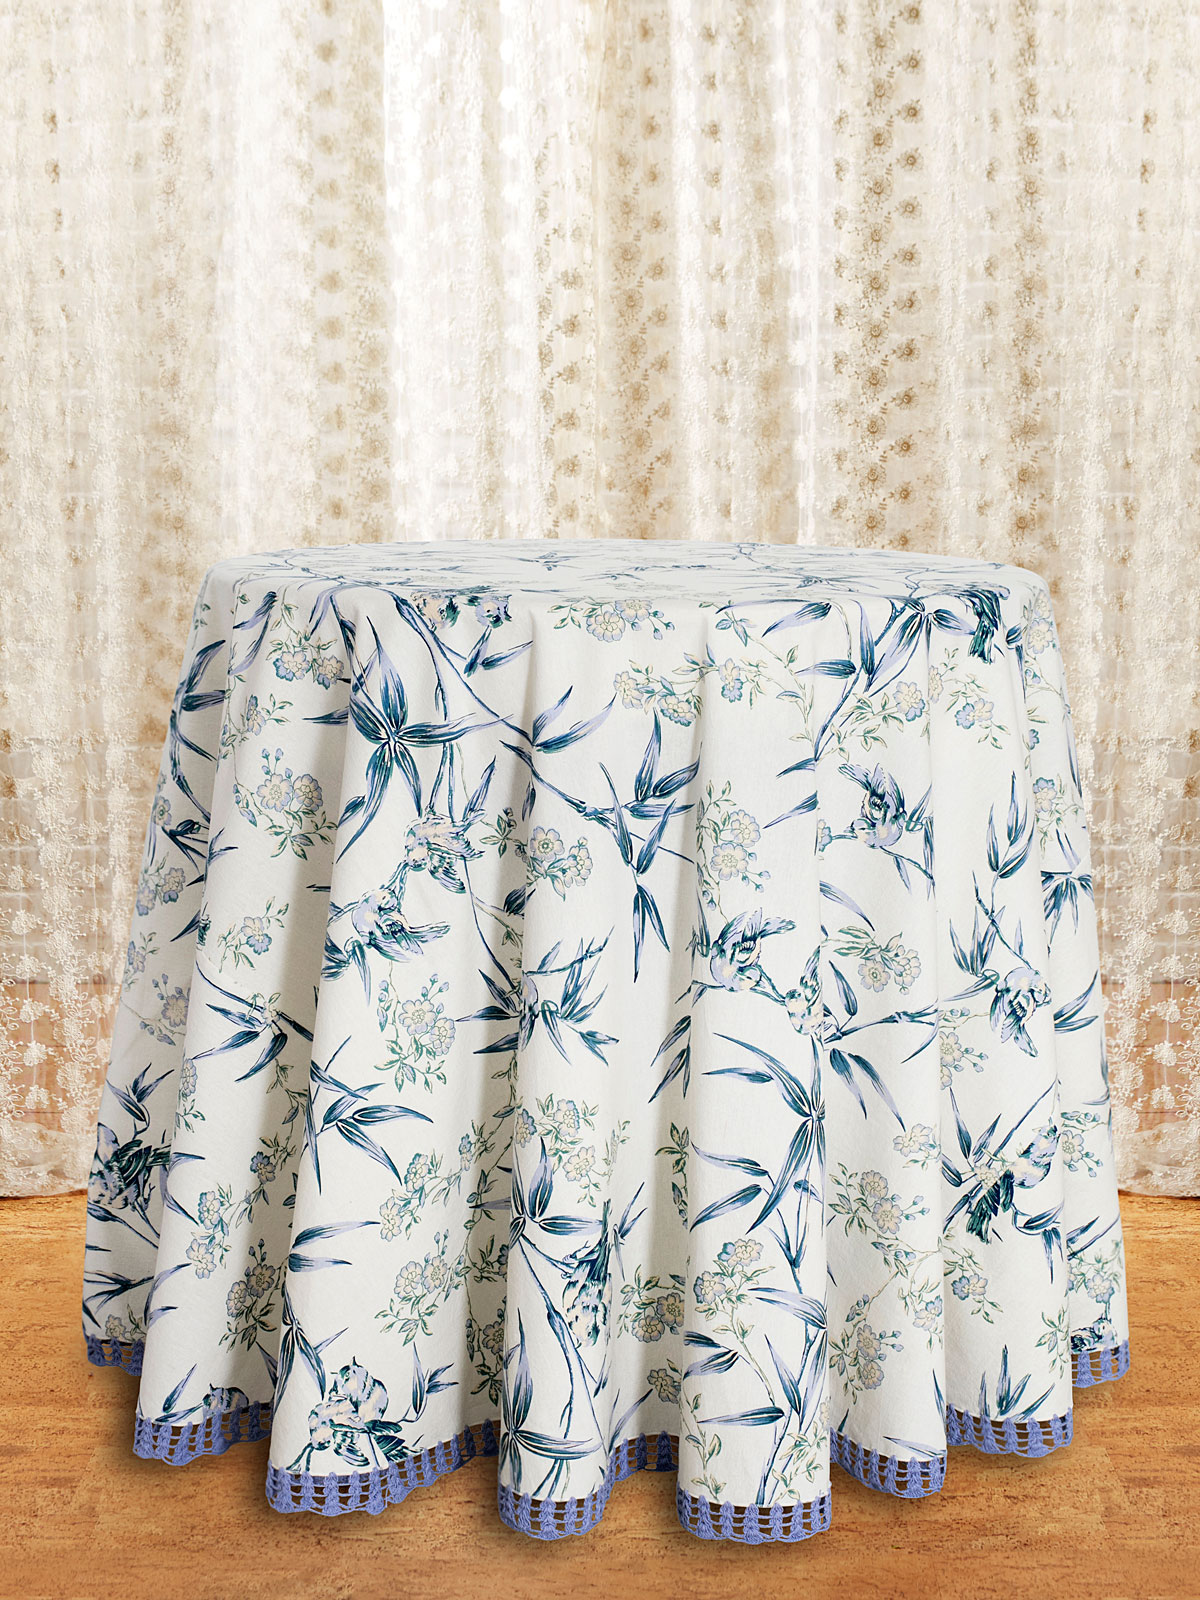 Bamboo Garden Round Tablecloth